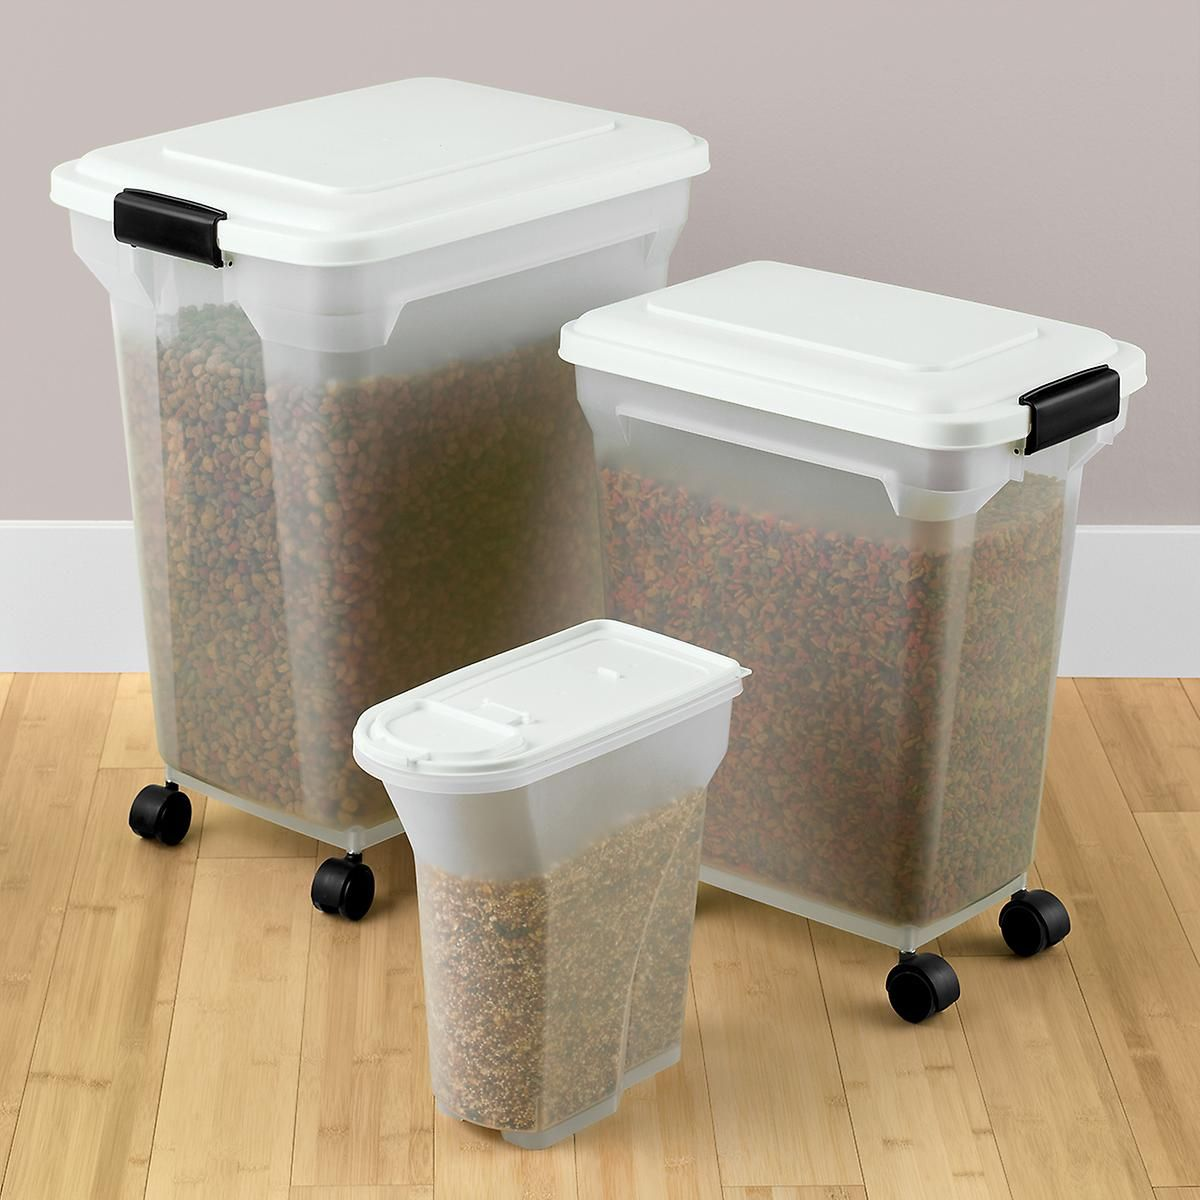 iris pet food containers   container store